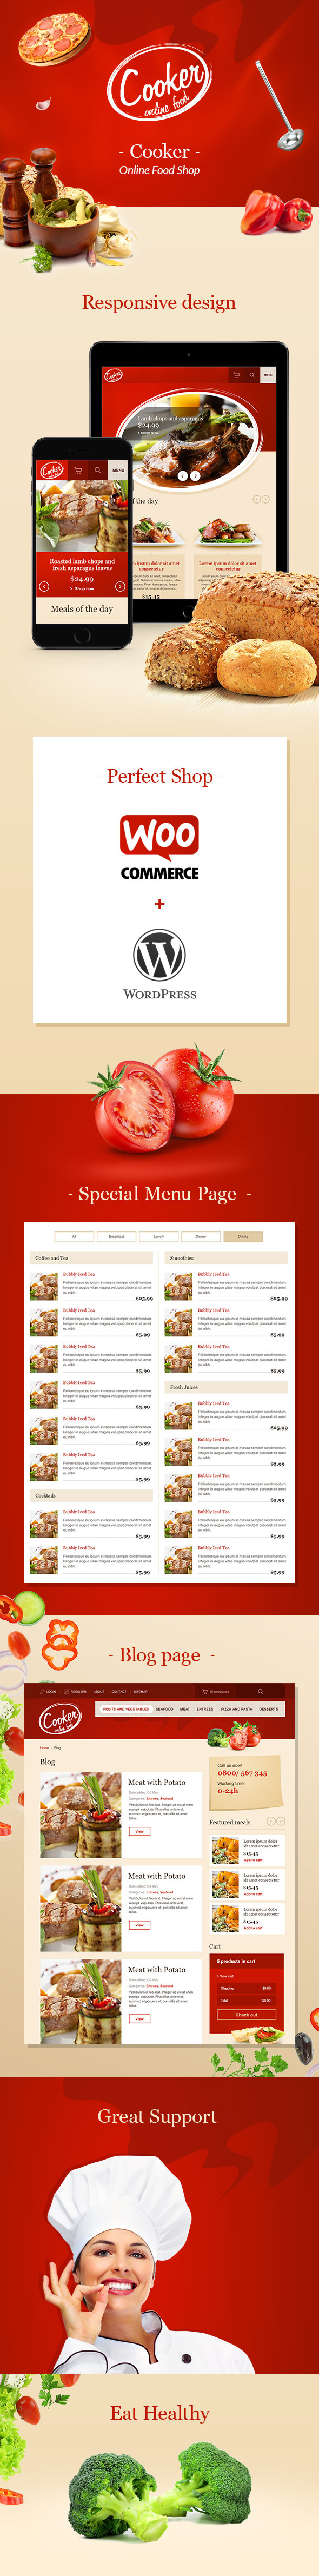 Cooker - Responsive Online Restaurant, Cafe Bar